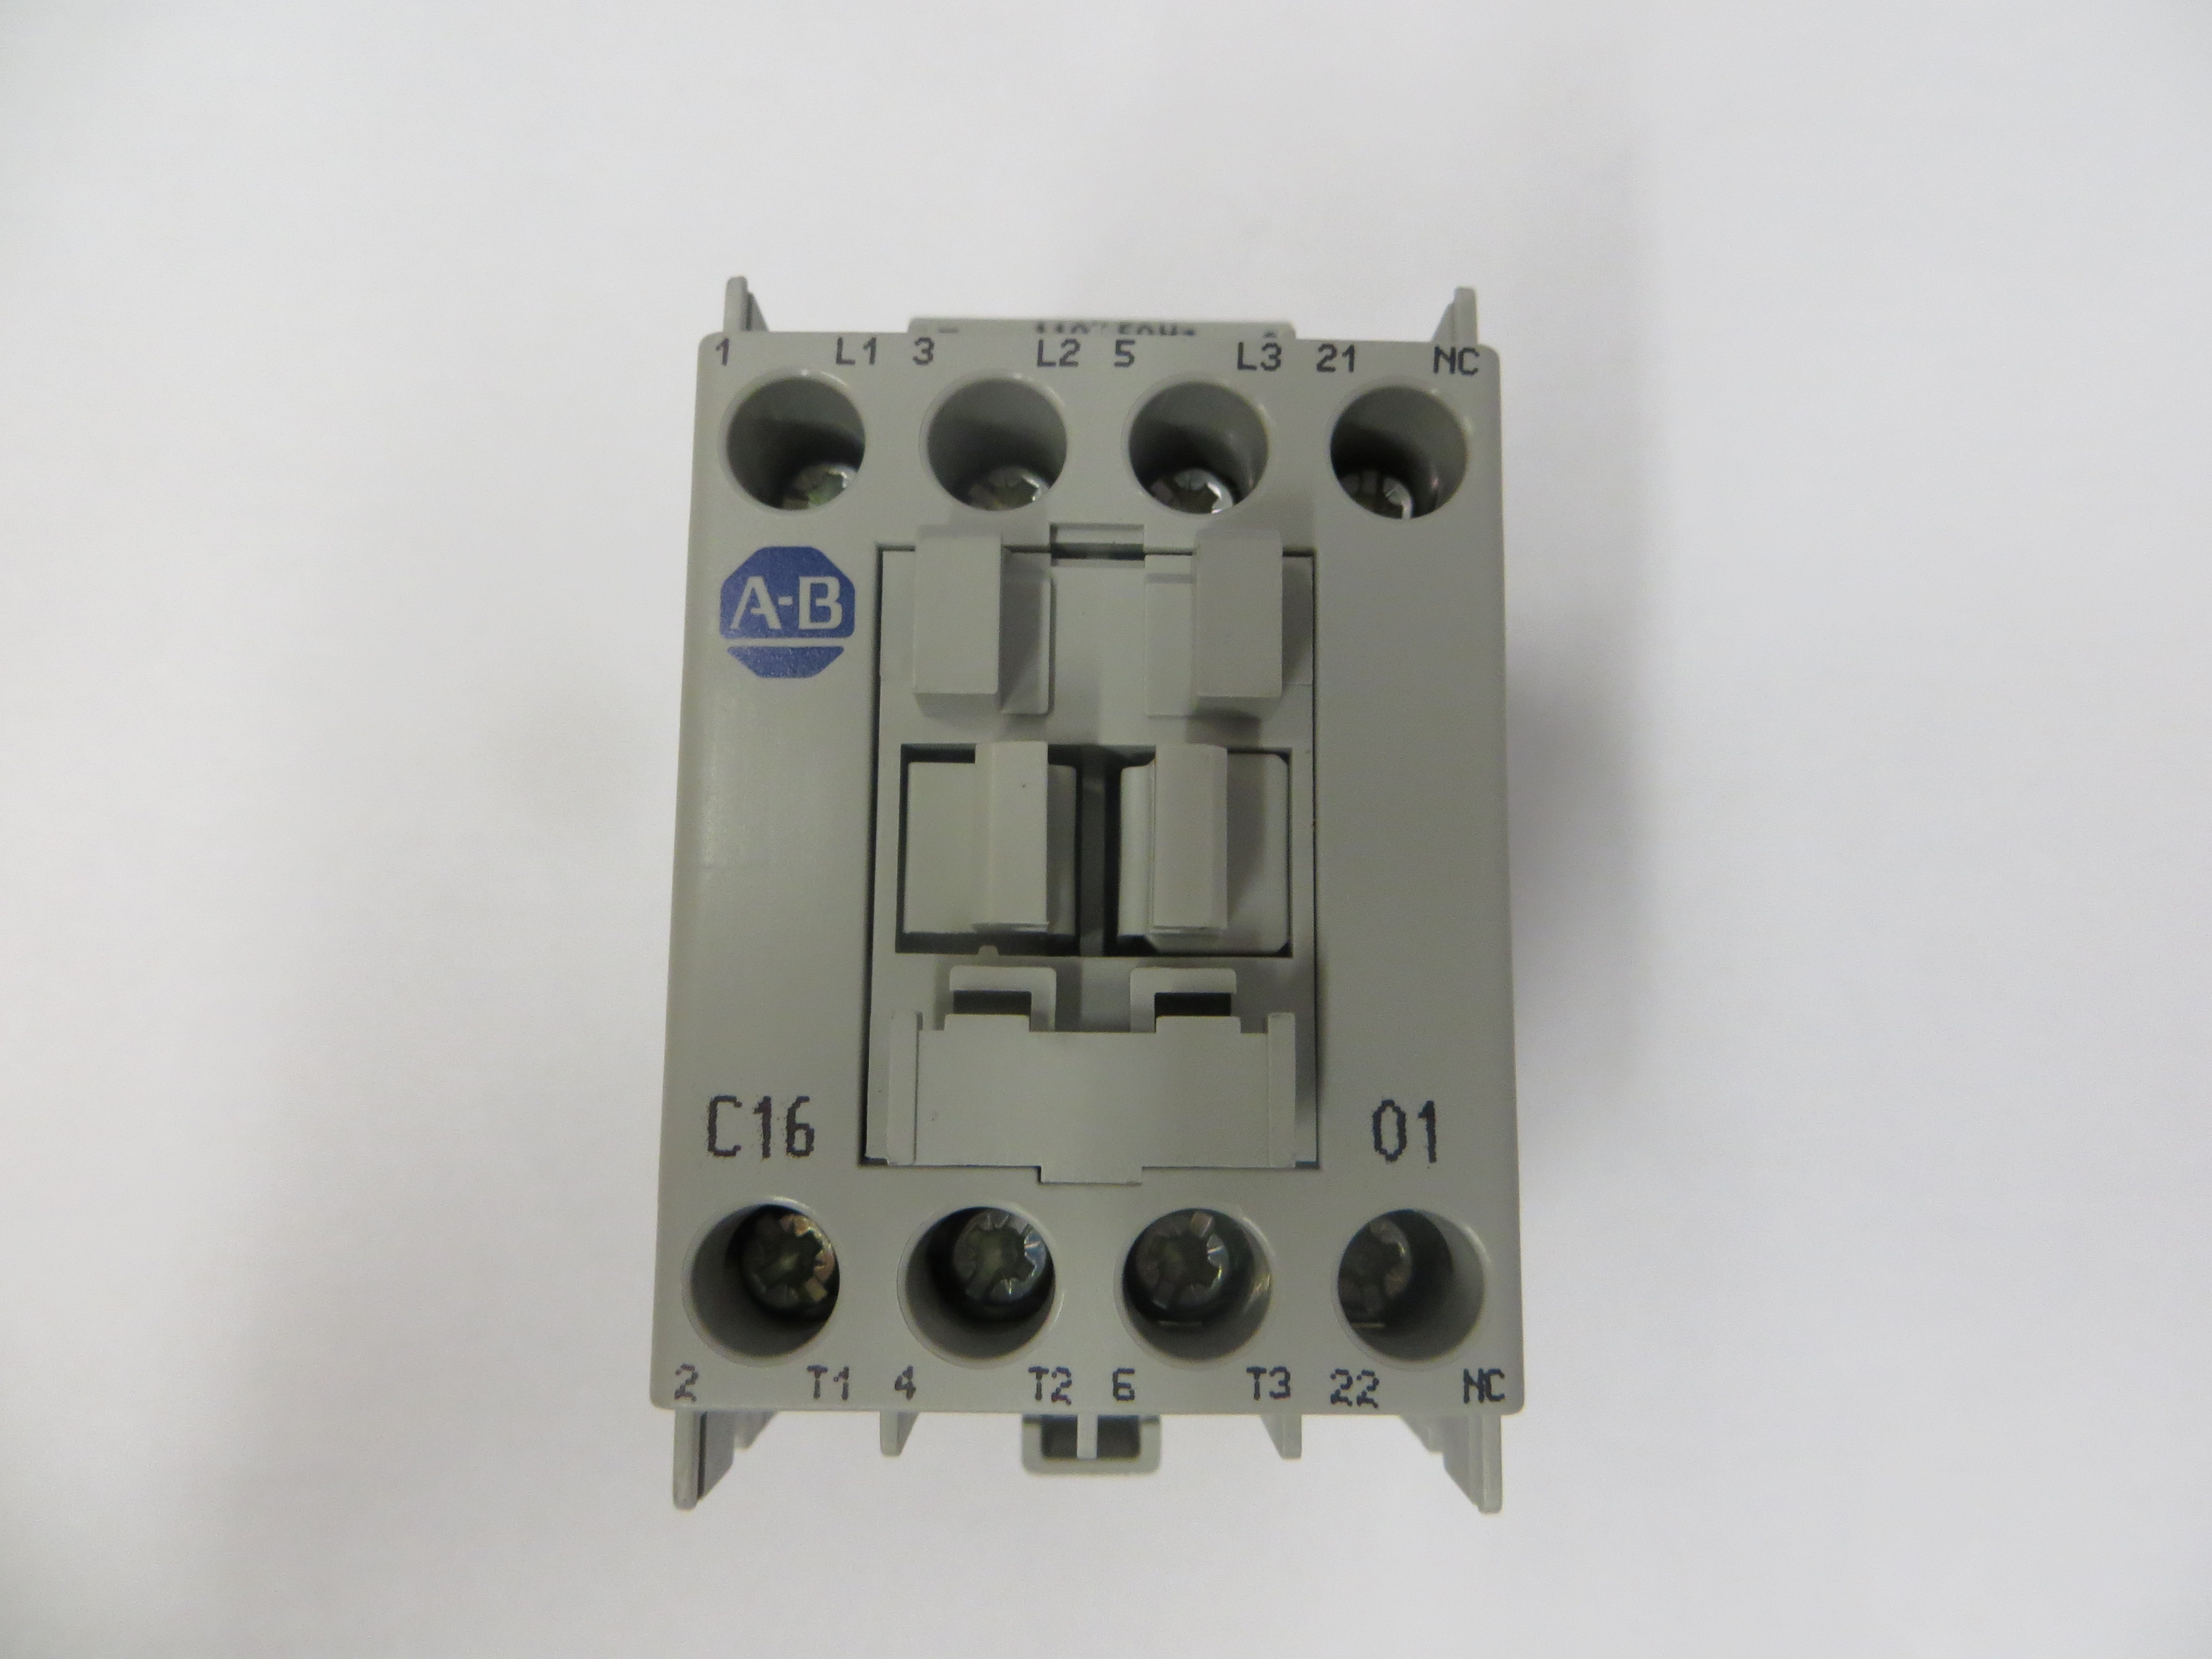 Spin Contactor C16 120V